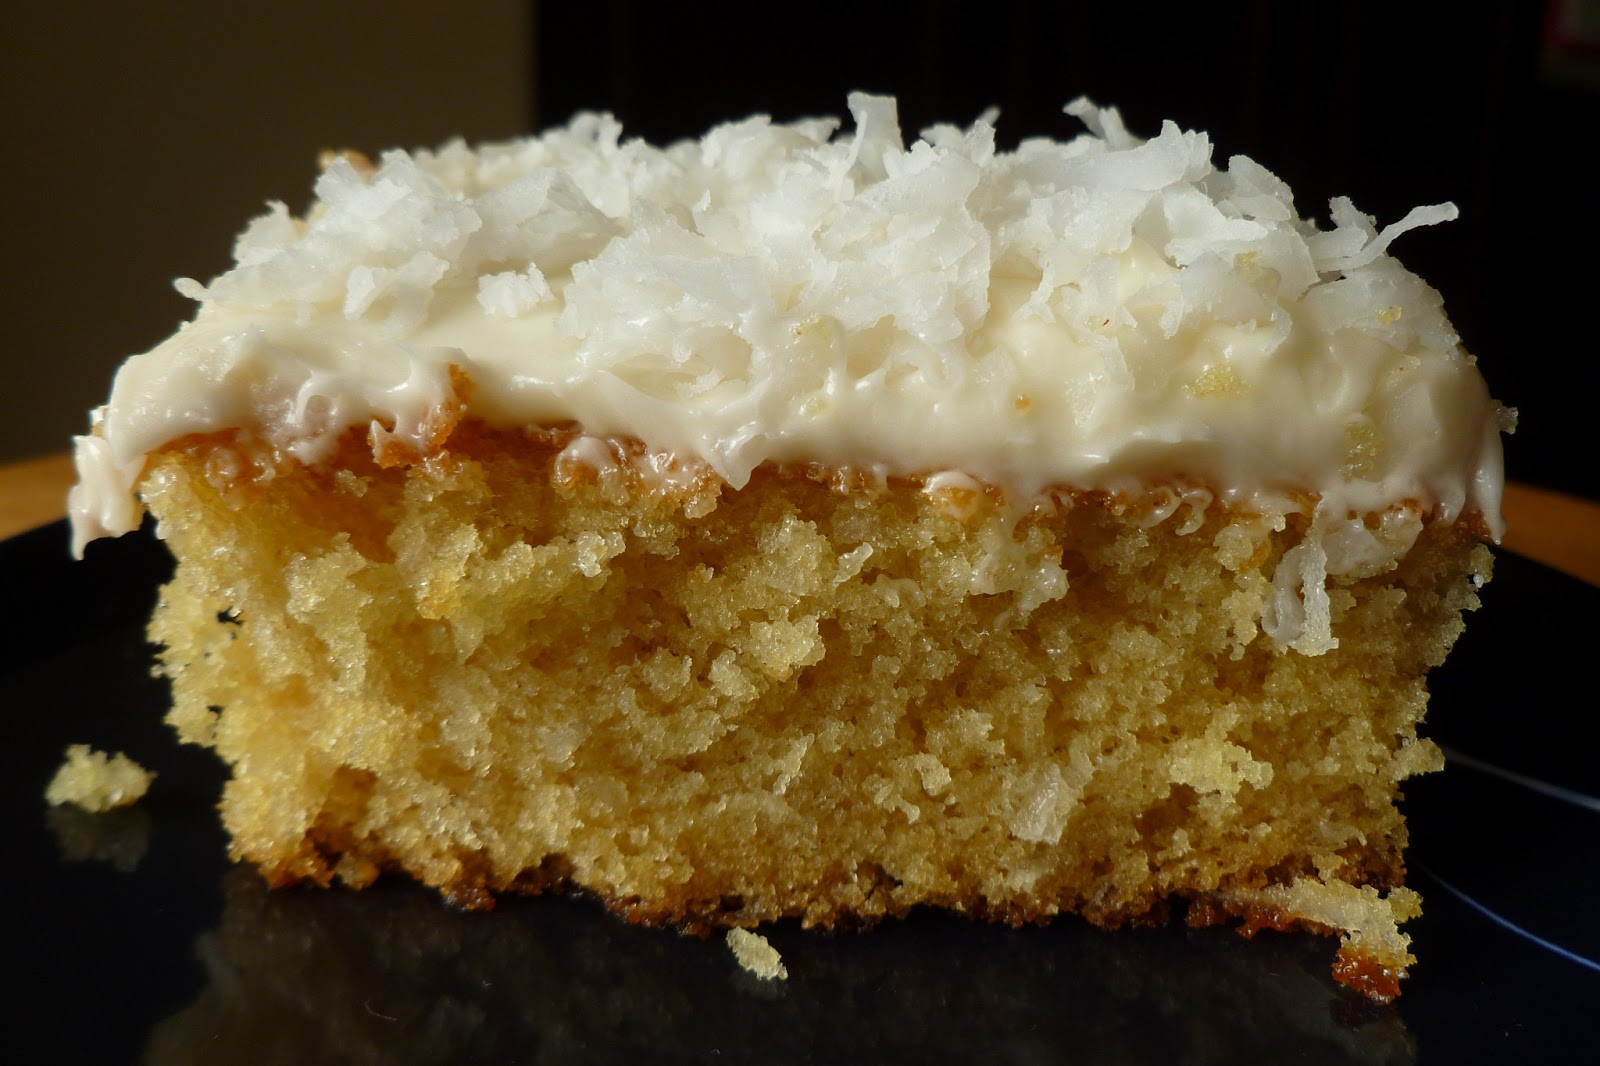 Coconut Cake - made May 5, 2013, recipe adapted from Cookin' Food